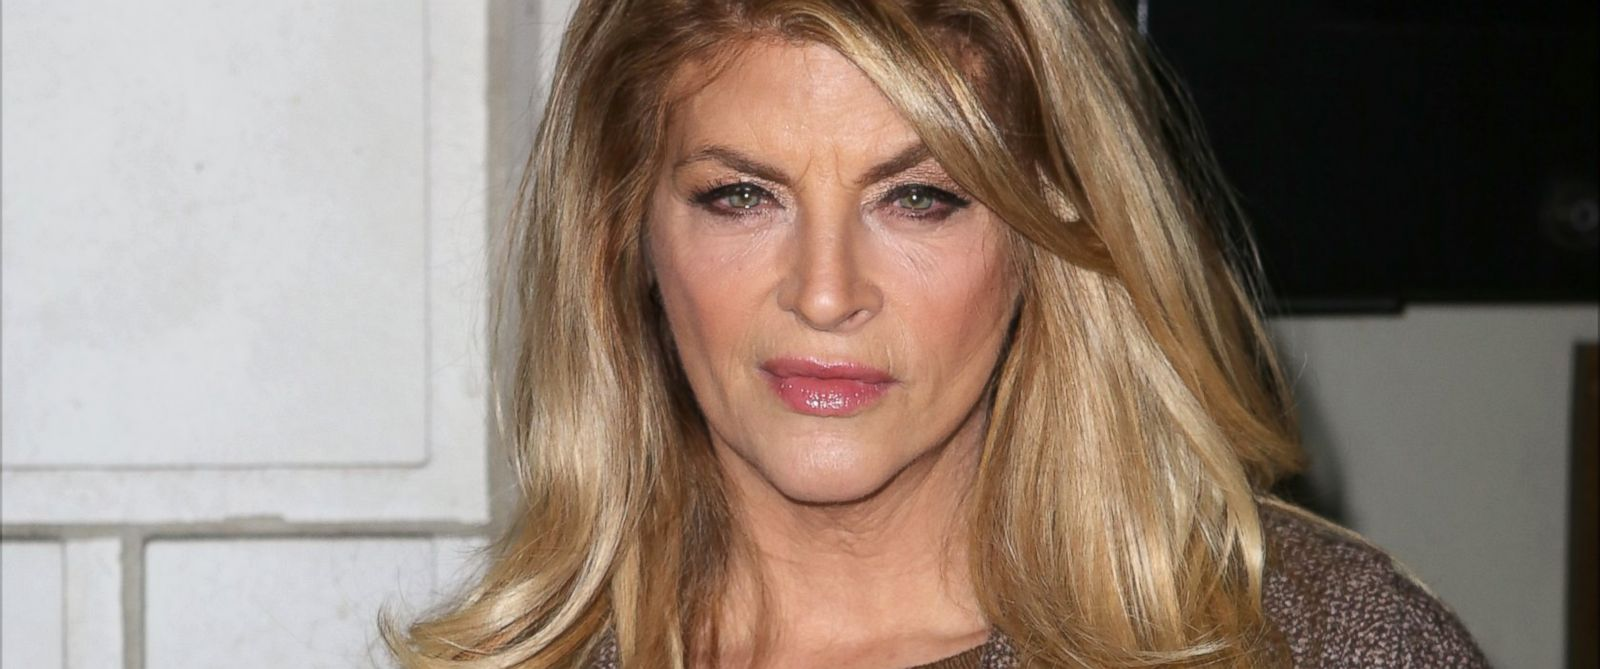 PHOTO: Kirstie Alley attends Constellations at the Samuel J. Friedman ...